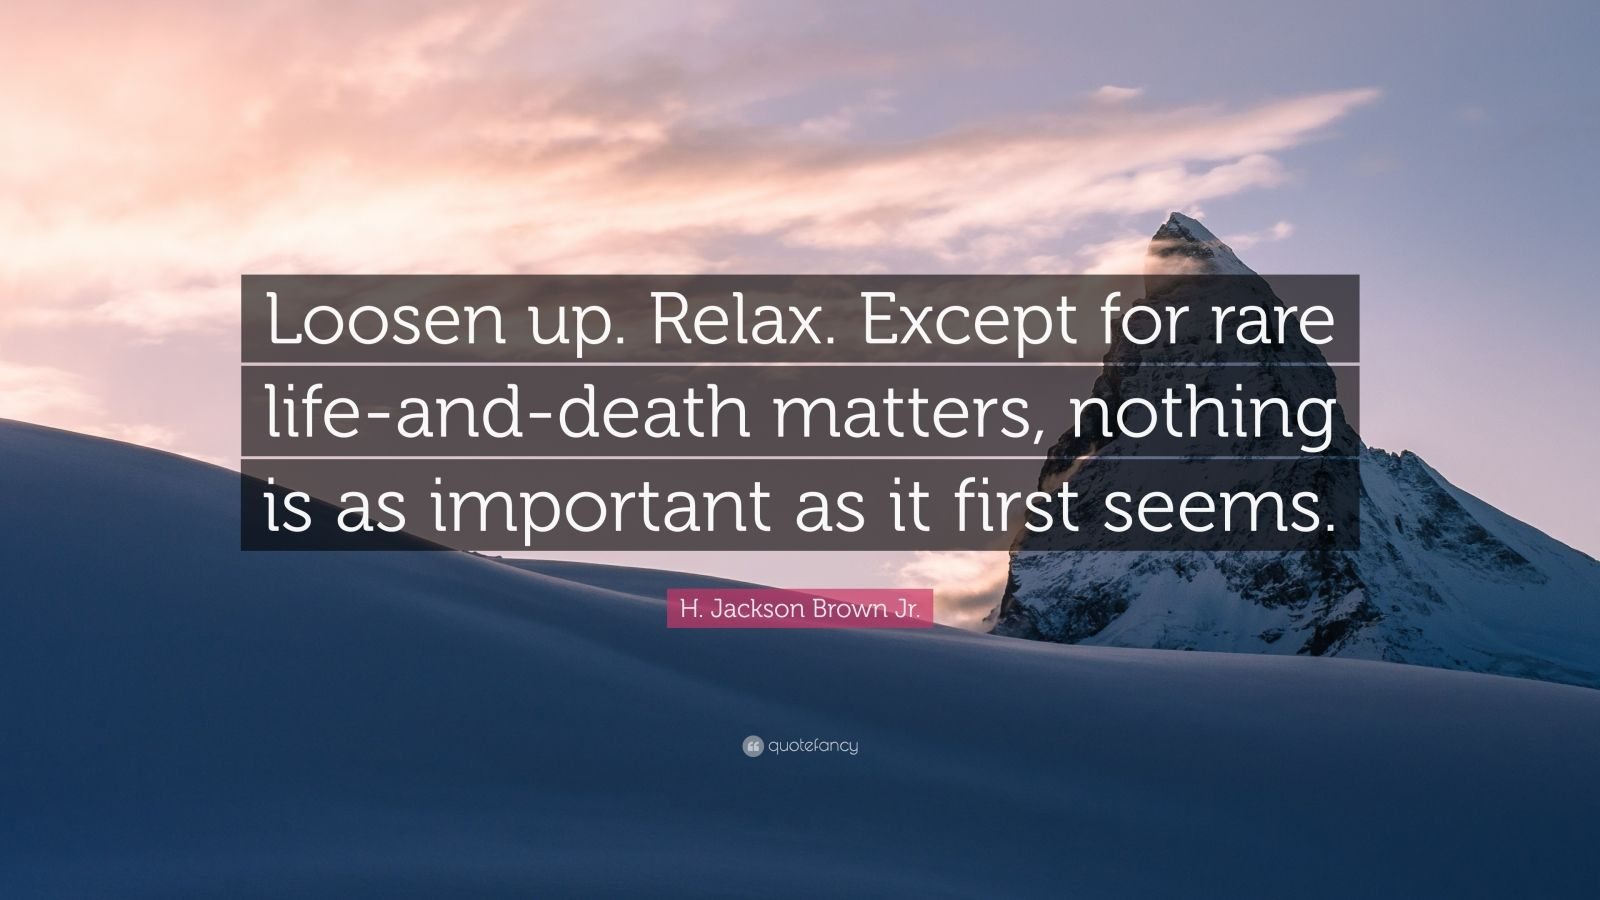 """H. Jackson Brown Jr. Quote: """"Loosen up. Relax. Except for rare life-and-death matters, nothing is as important as it first seems."""""""